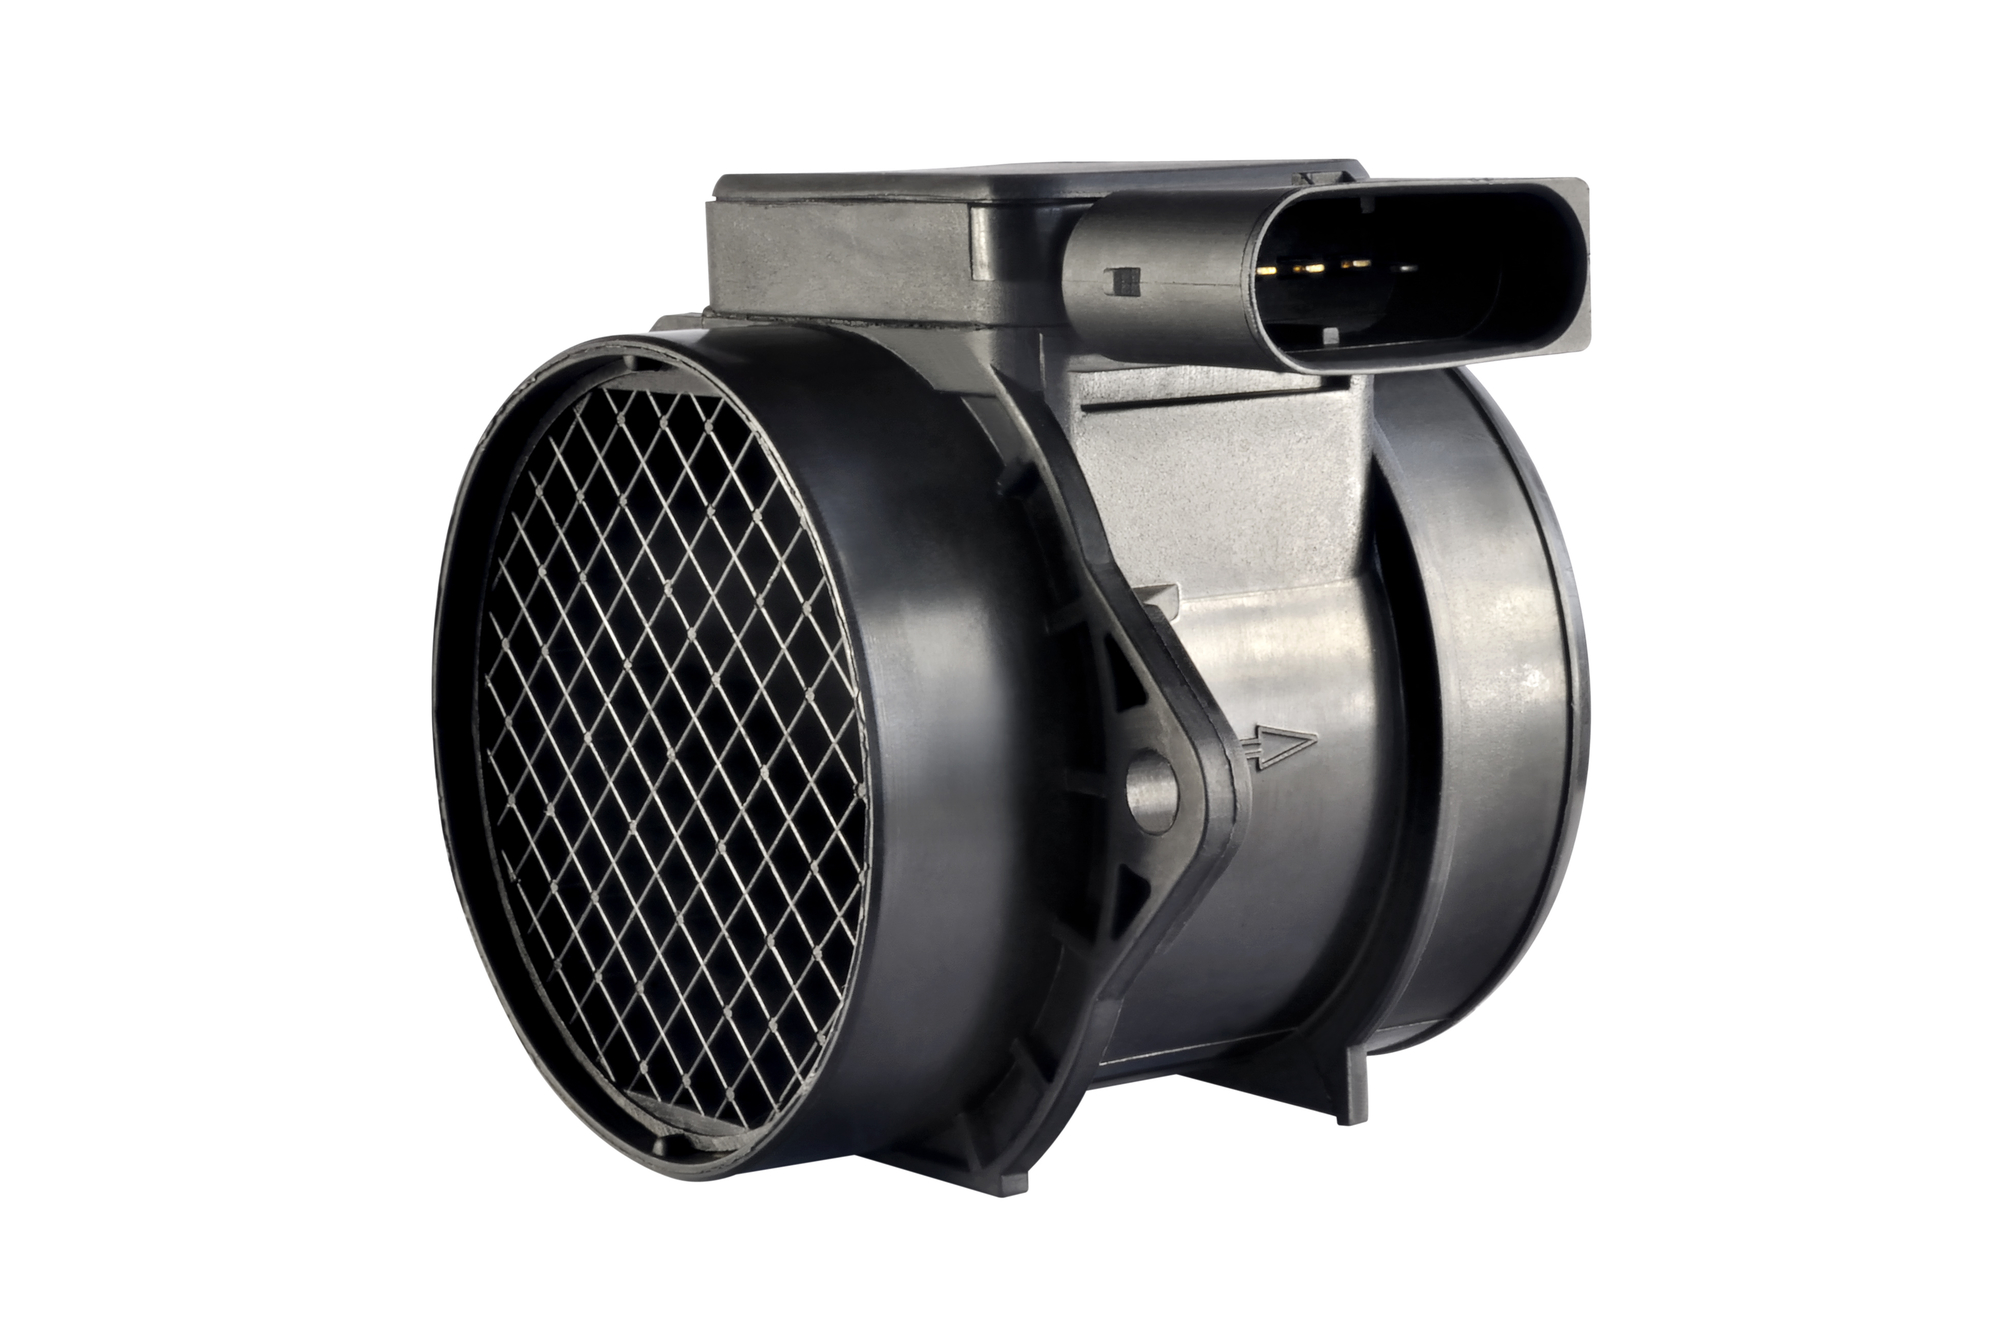 Bad Mass Air Flow Sensor? (7 Symptoms with Fixes) - The